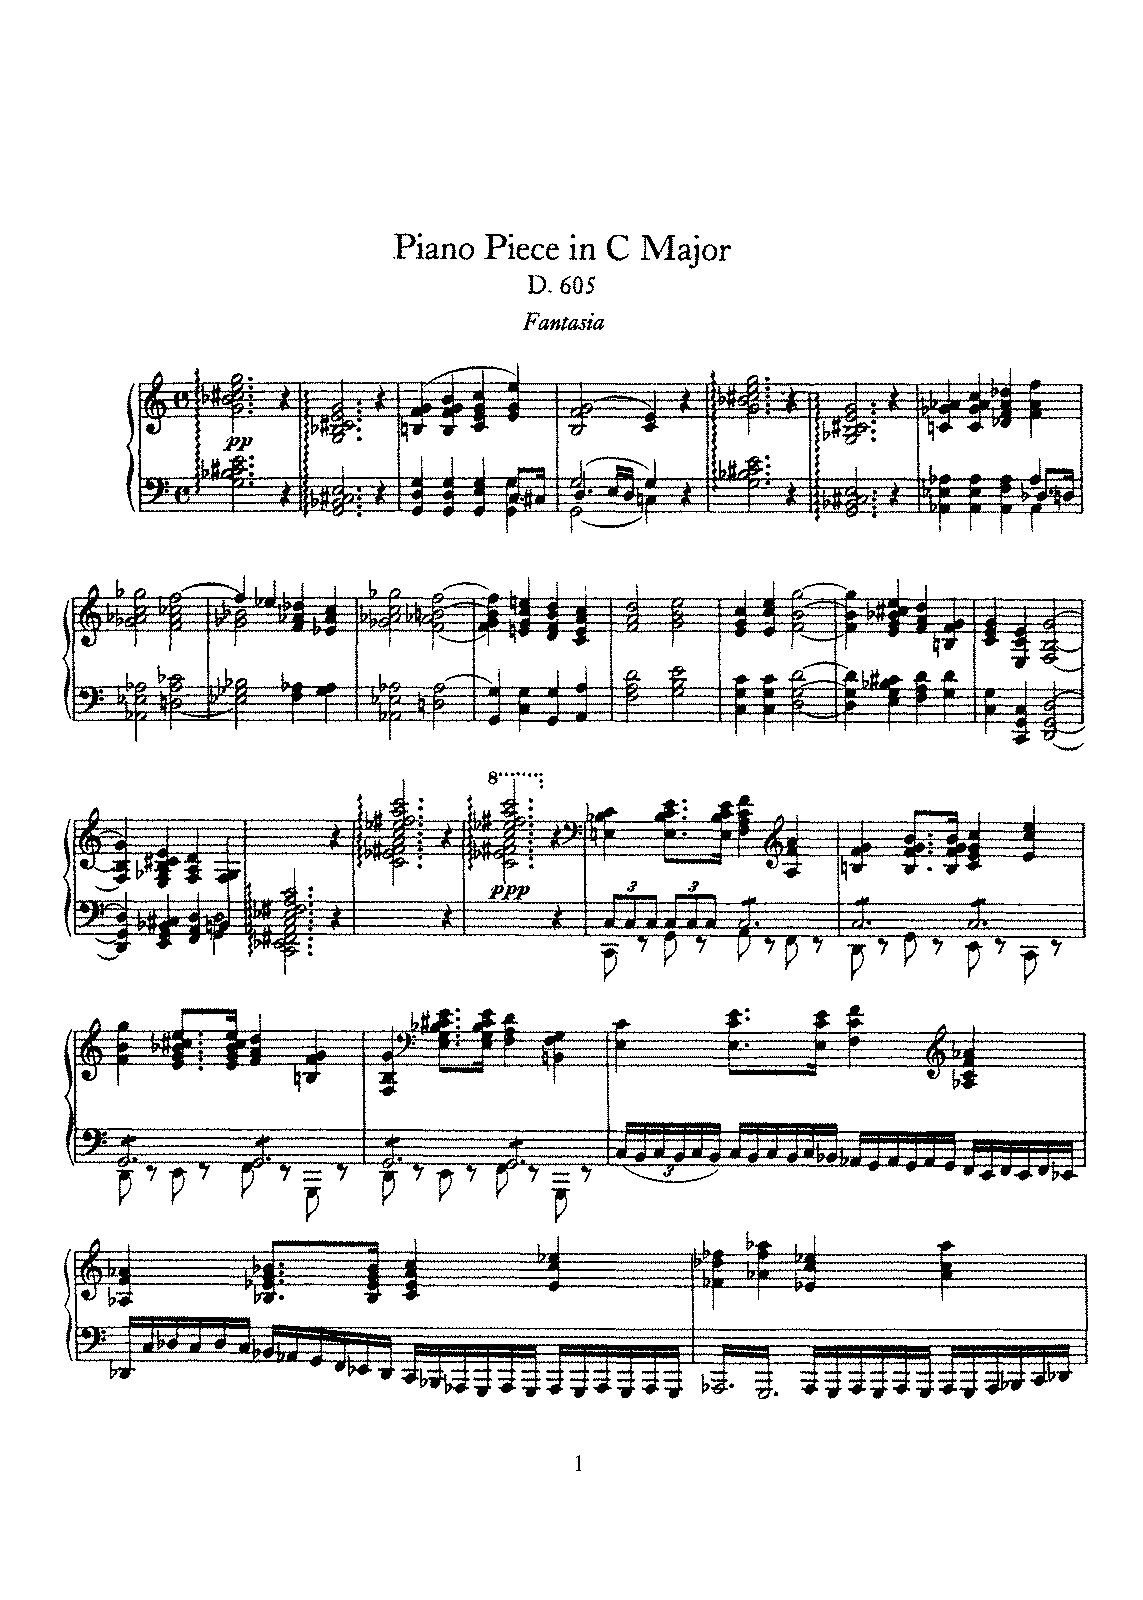 Schubert - D.605 - Piano Piece in C Major.pdf